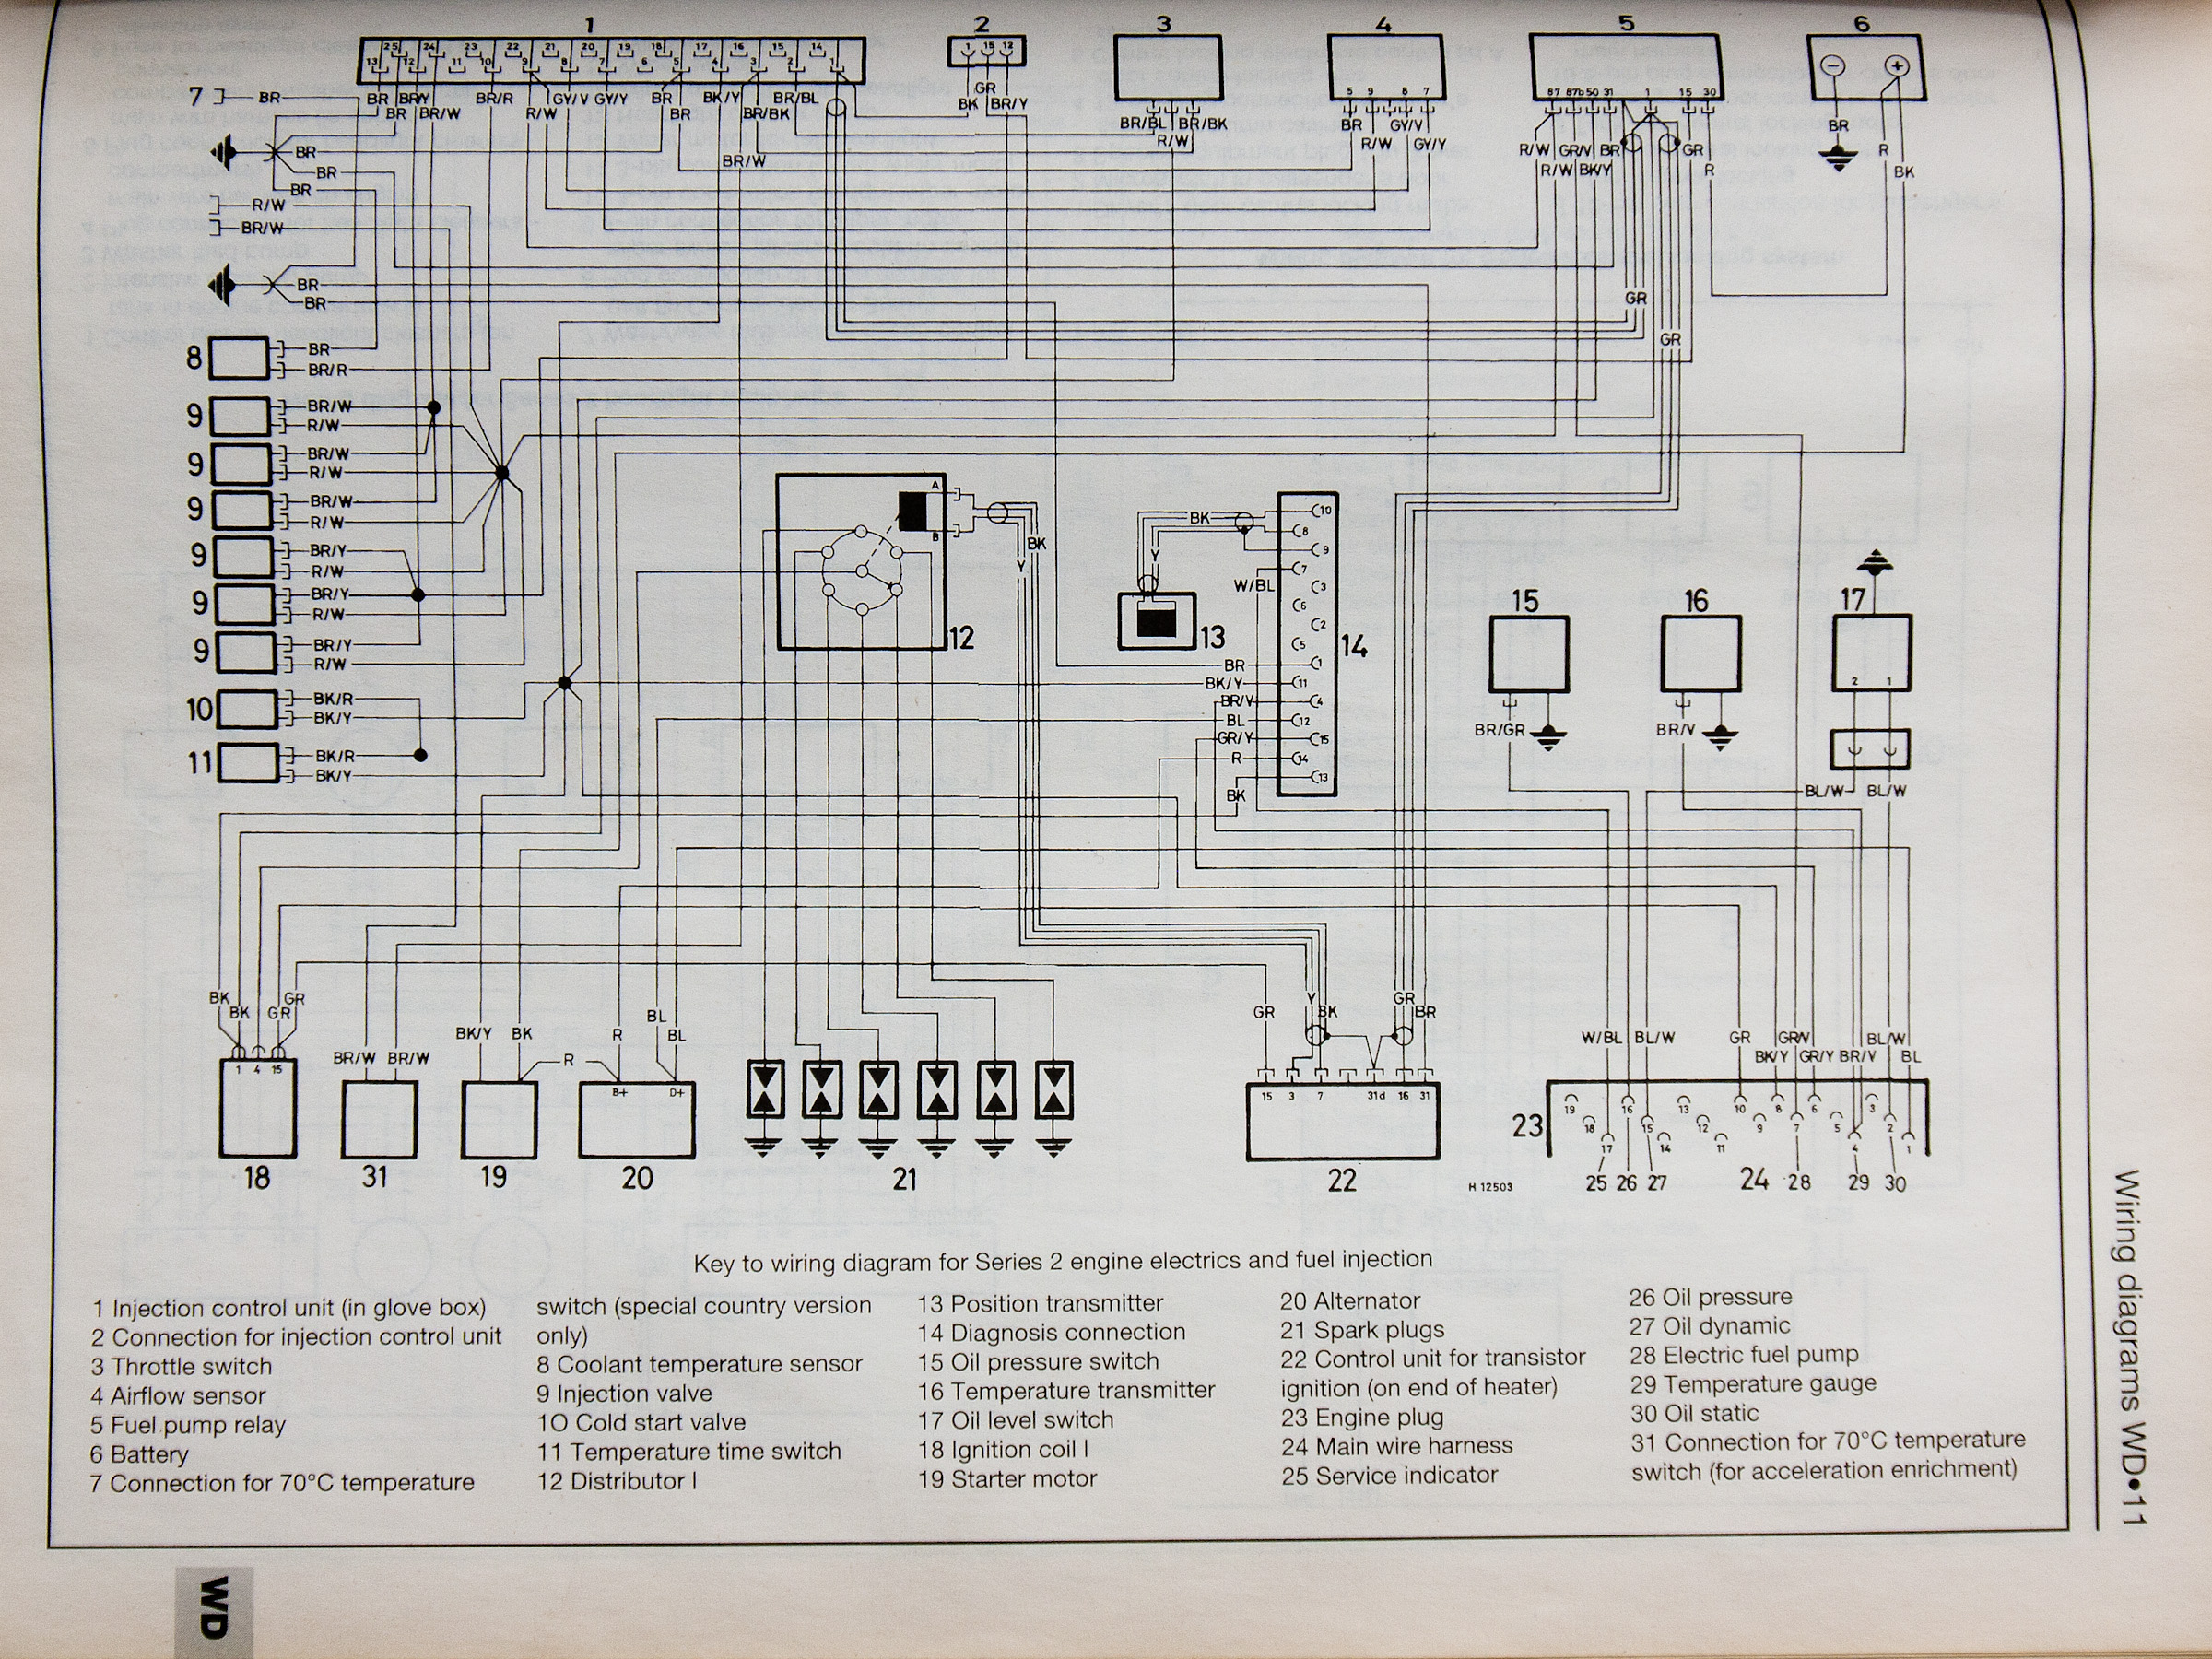 1999 BMW 323I Engine Diagram http://www.exx.se/techinfo/e30_info/index.html